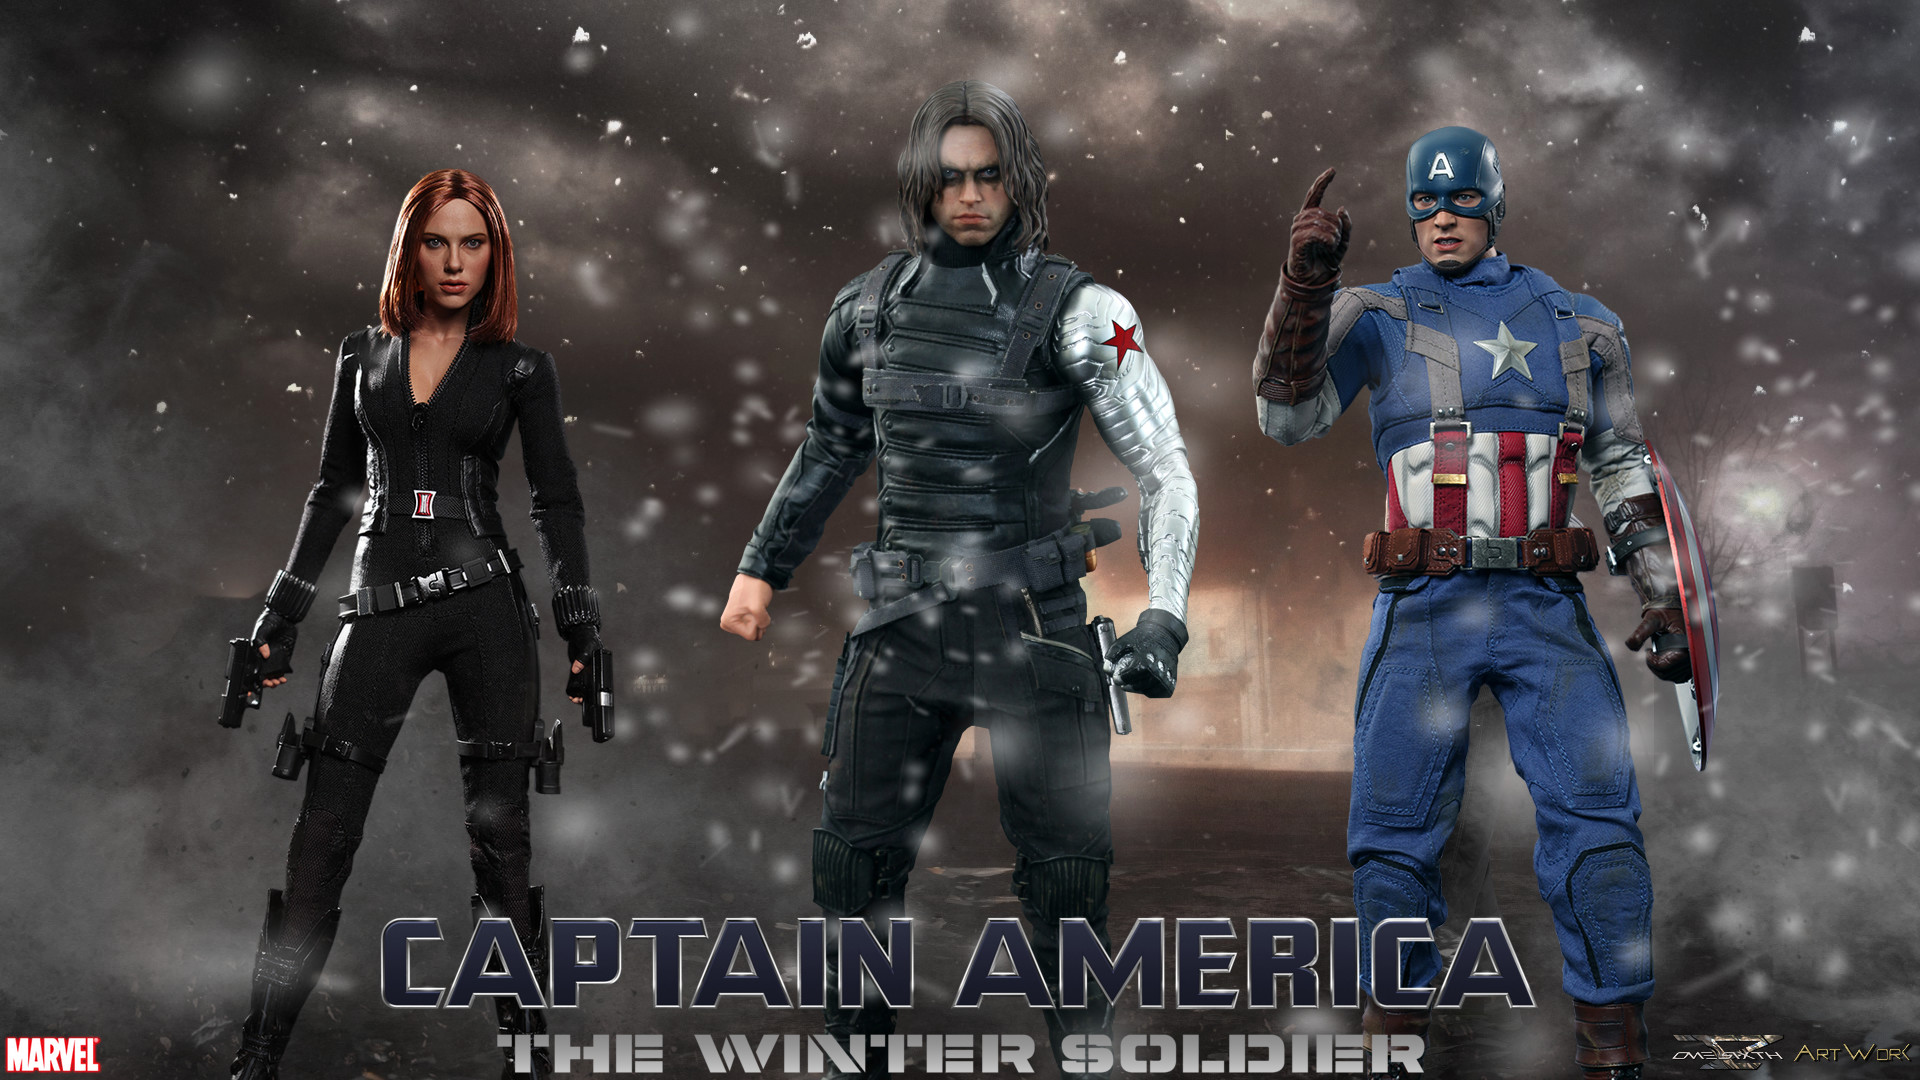 1920x1080 ... Winter Soldier - Hot Toys Full HD Wallpaper. Saturday, March 29, 2014